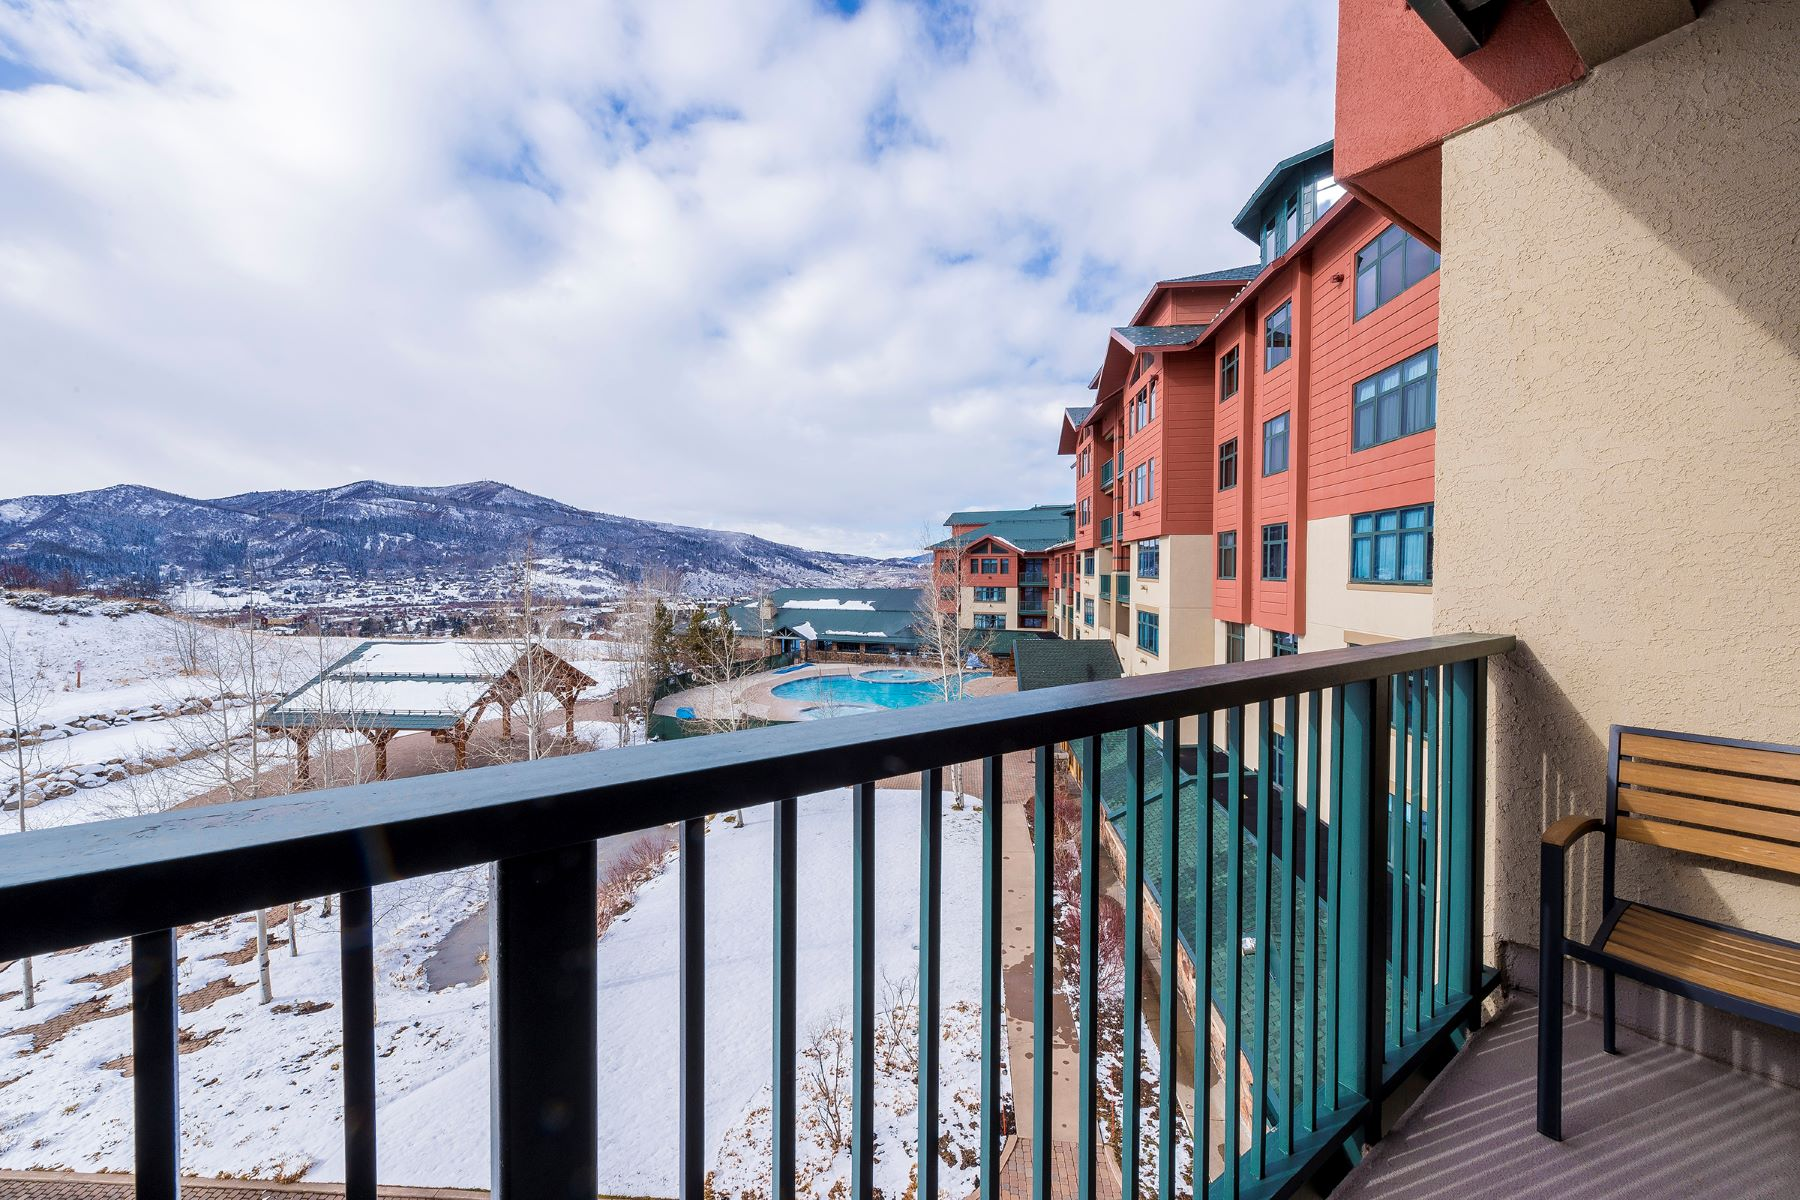 Additional photo for property listing at Heart of the Steamboat Resort 2300 Mount Werner Cir #533 Steamboat Springs, Colorado 80487 United States